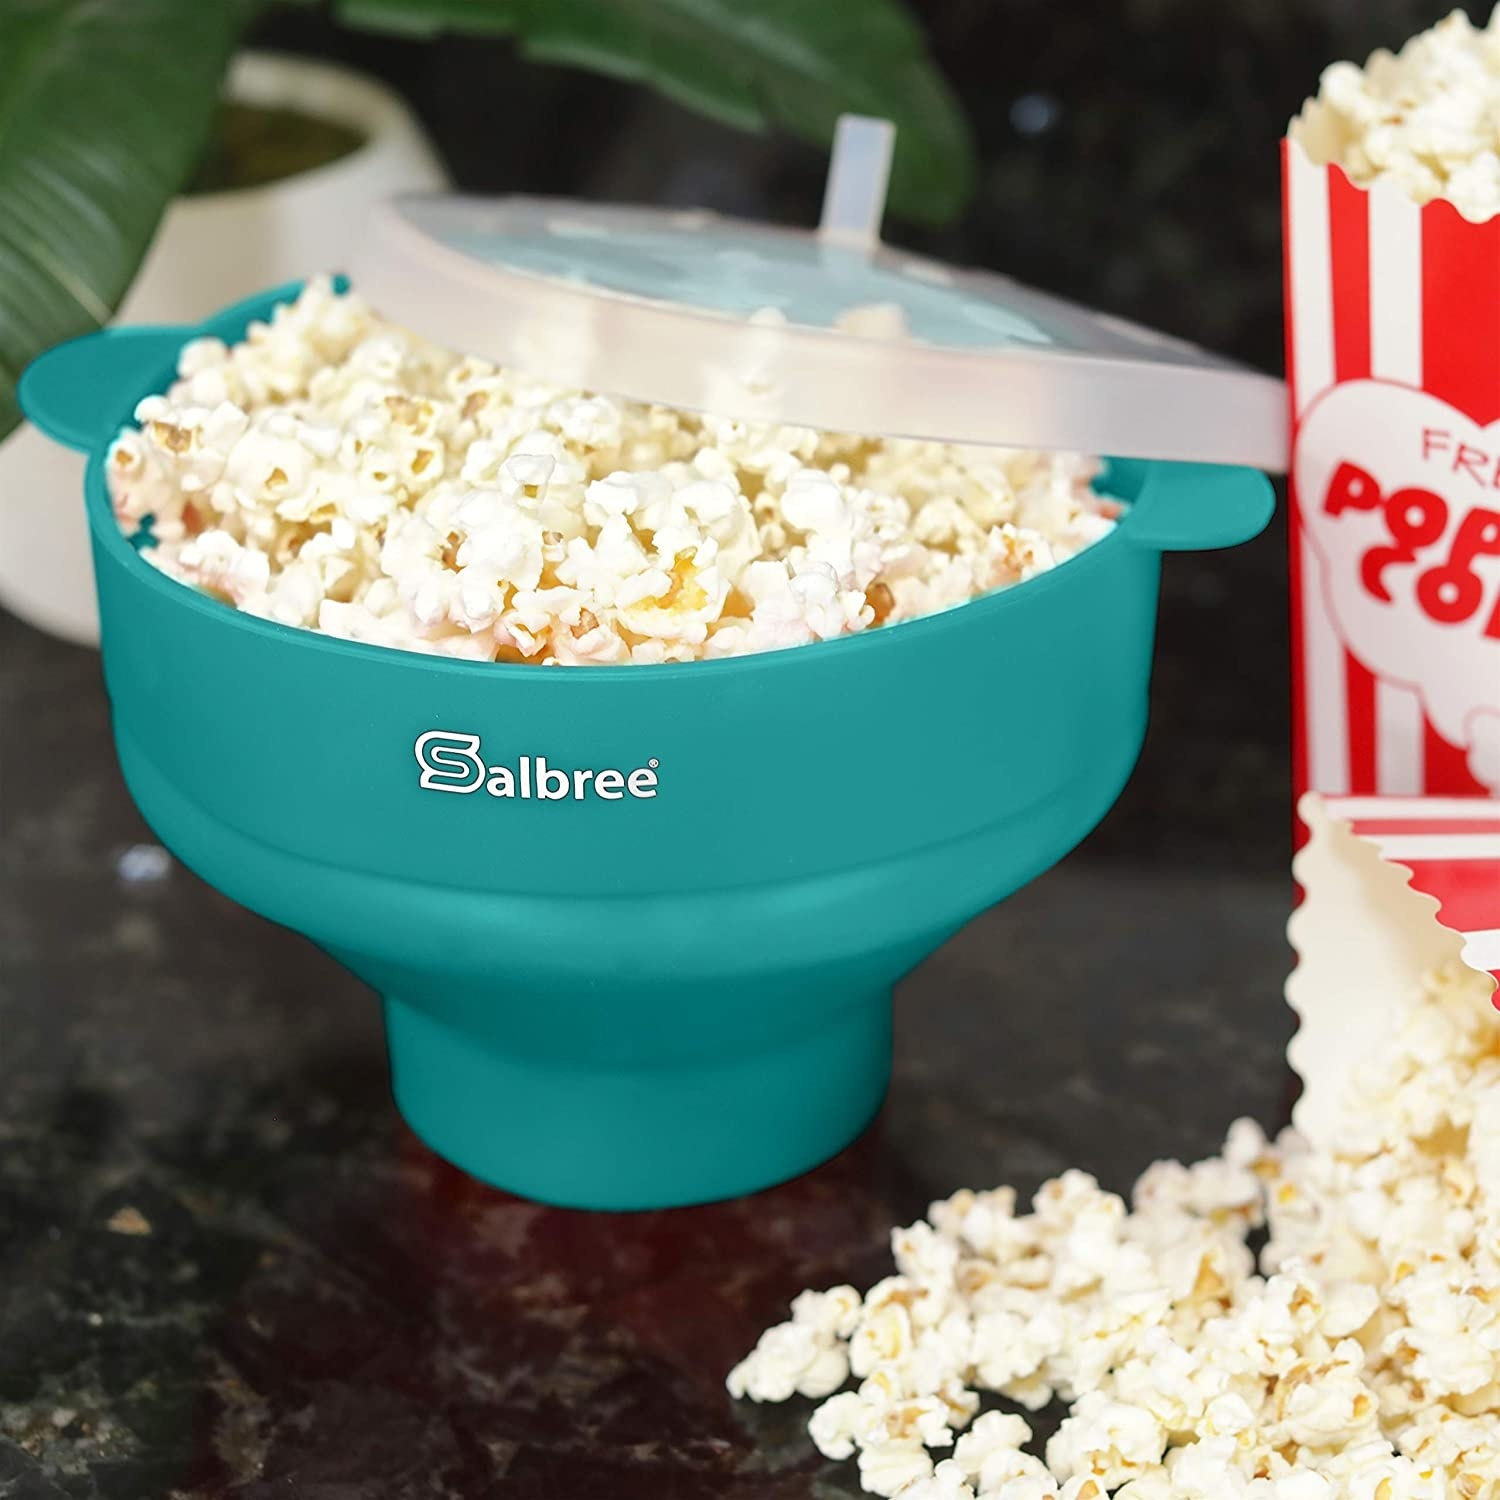 The popping bowl in the aqua color holding popcorn that was just made inside of it